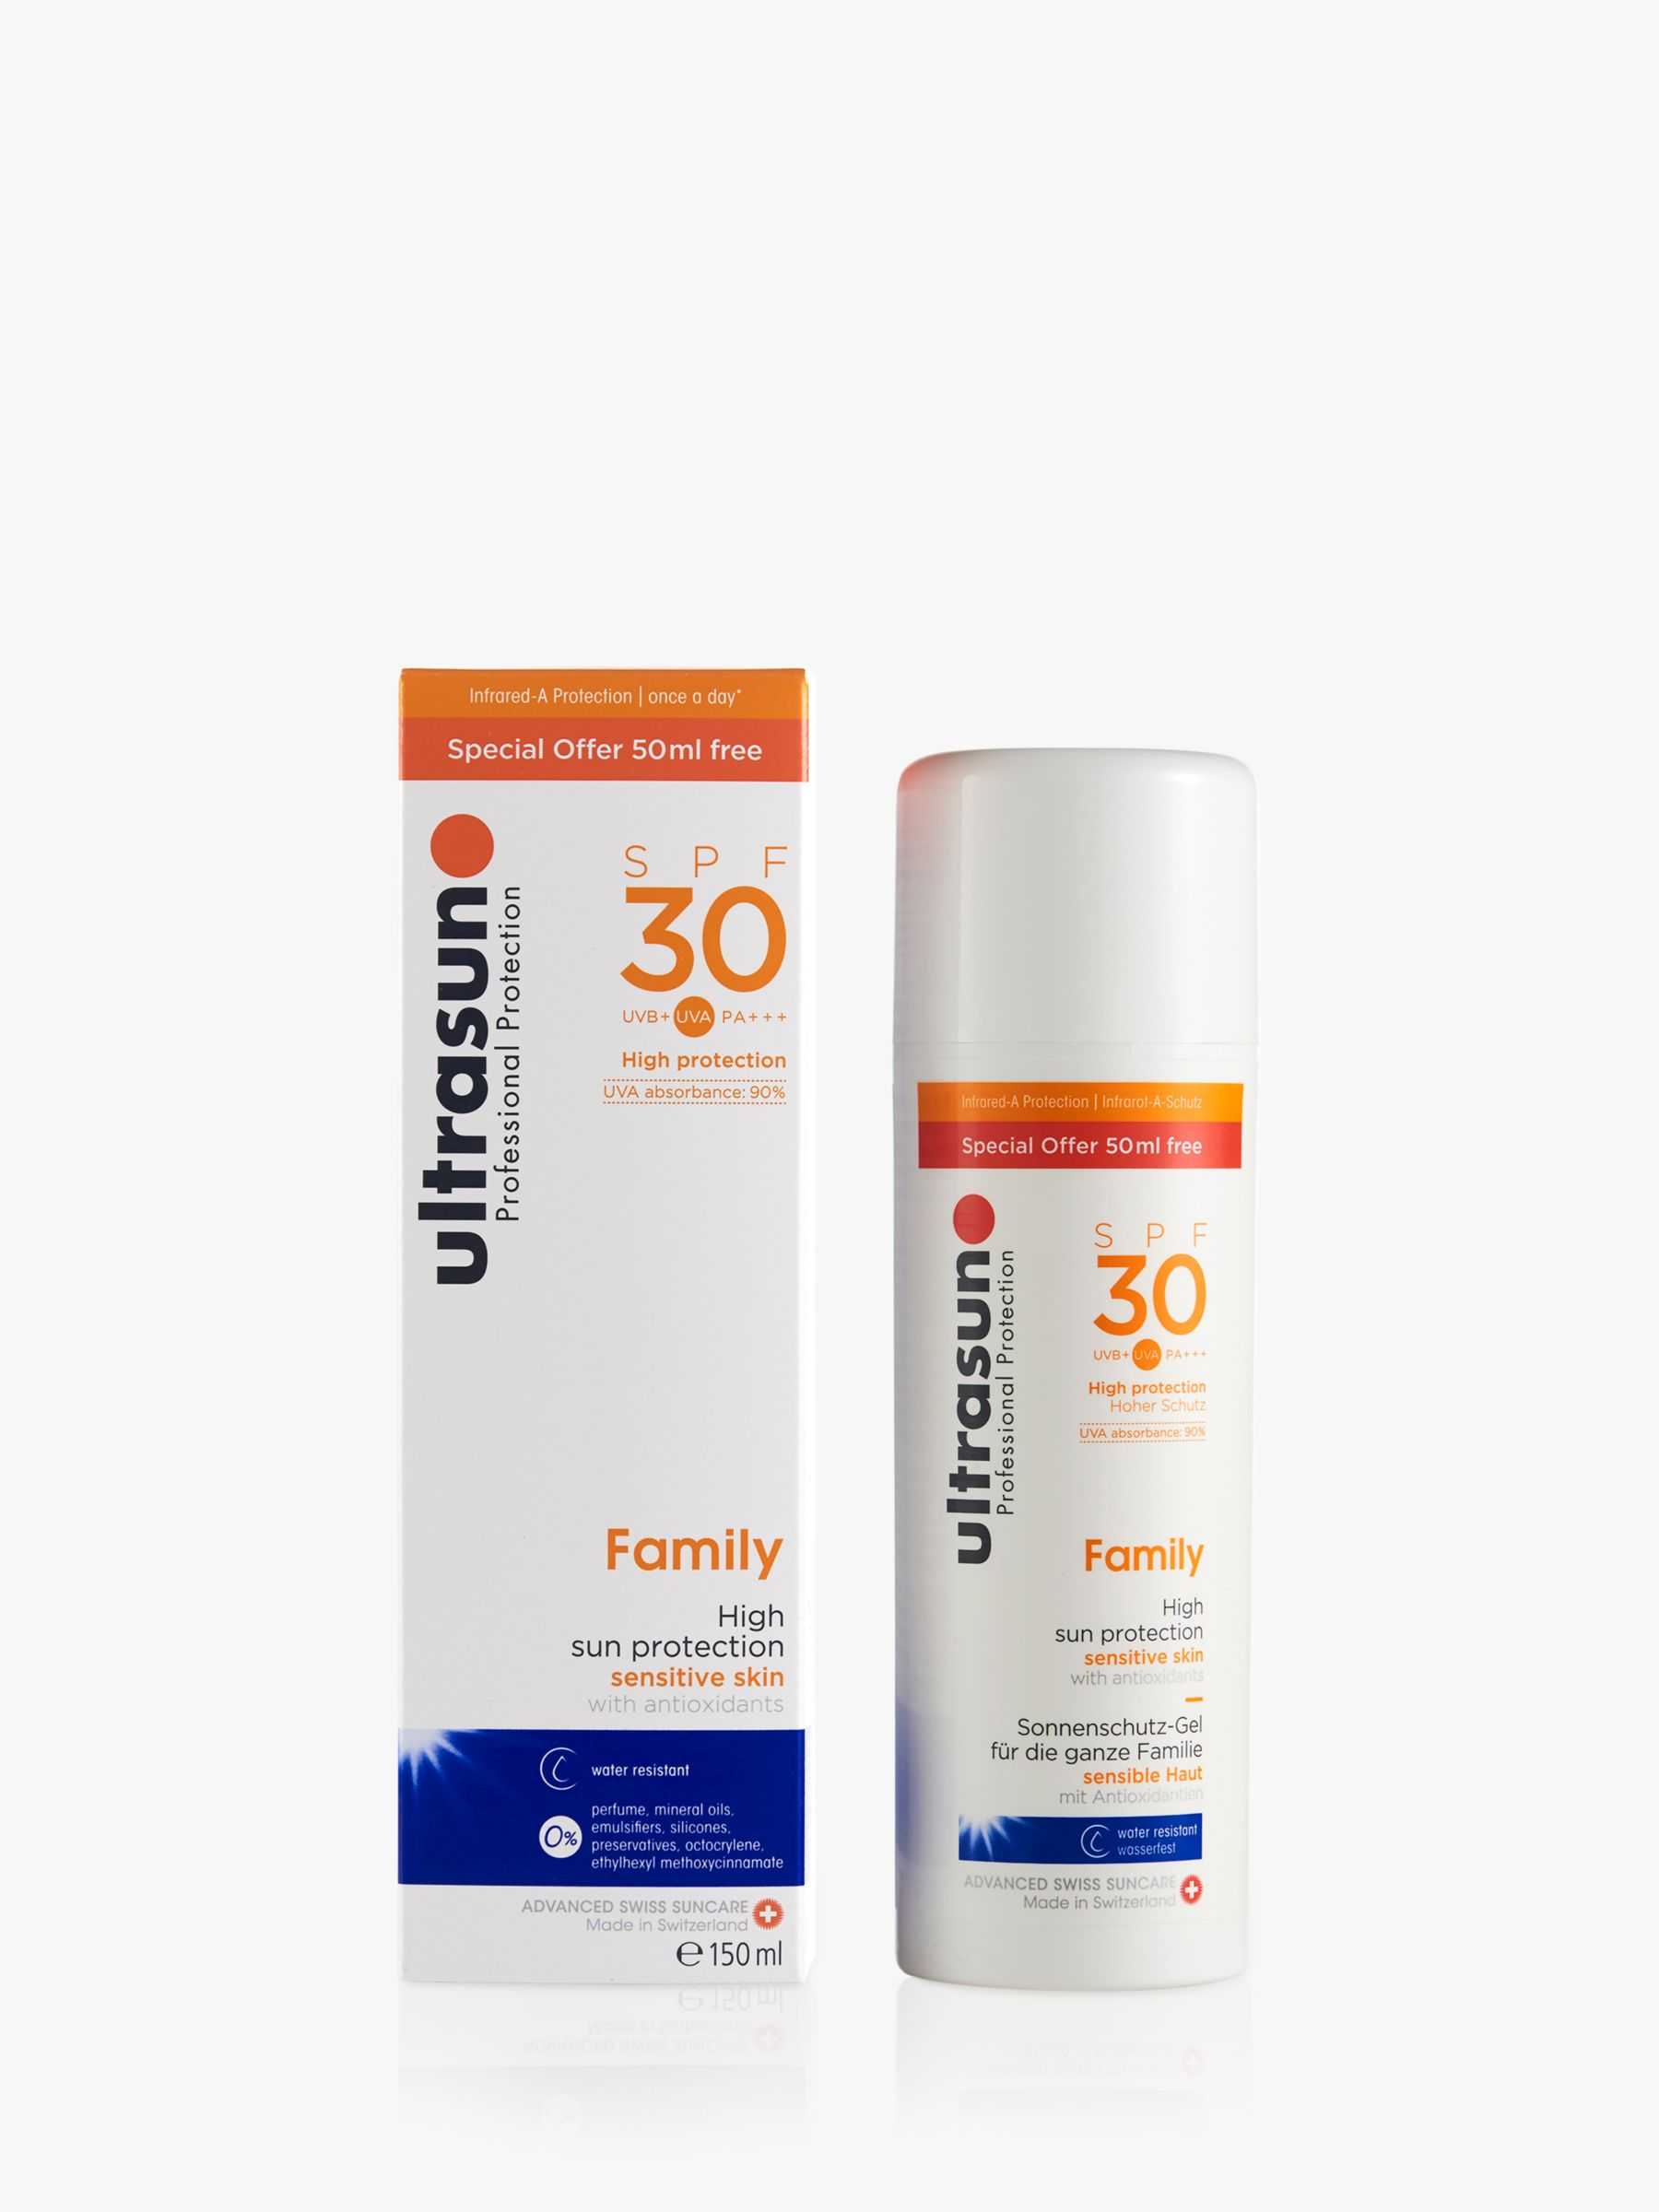 Ultrasun Ultrasun SPF 30 Family Ultra Sensitive Sun Cream, 150ml